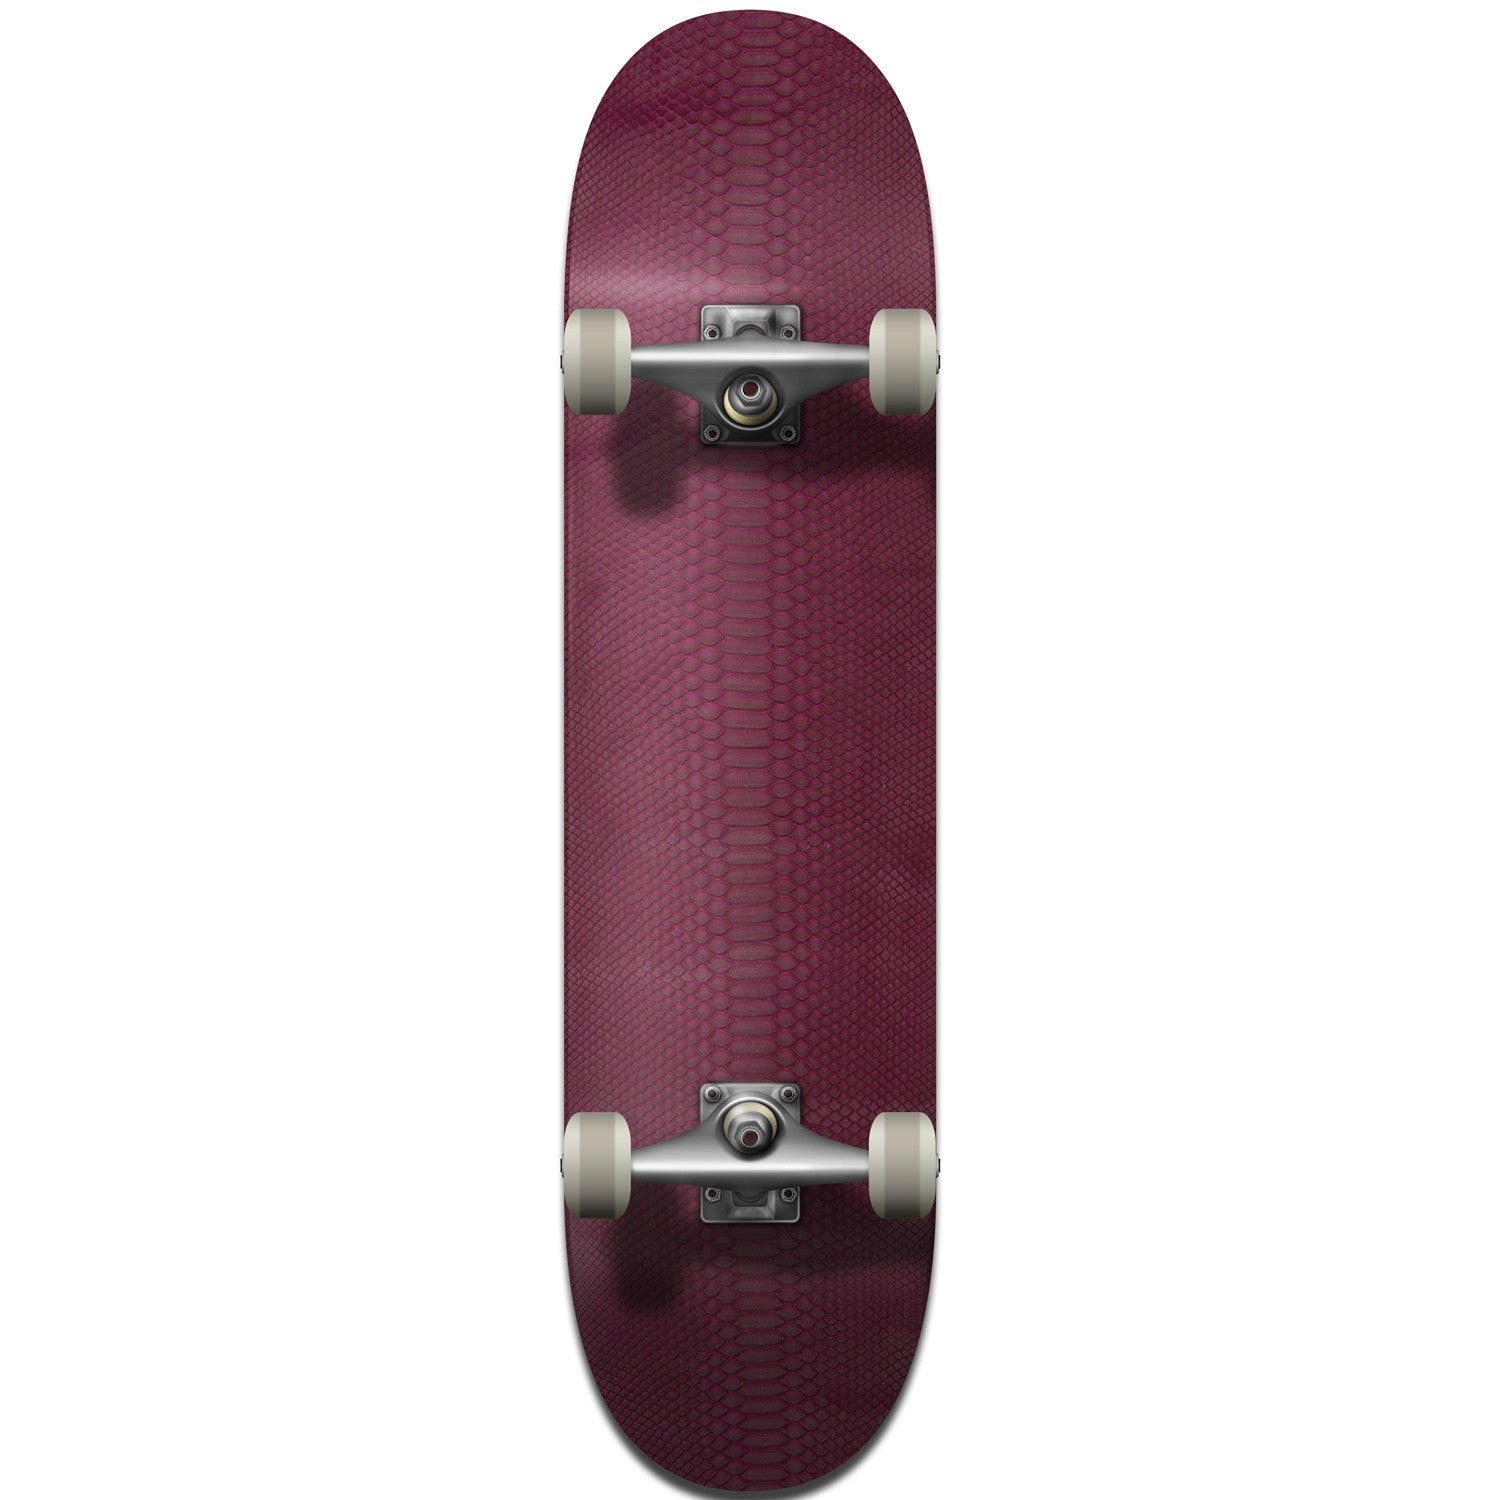 Violet Python Leather Skateboard Deck - Bottom